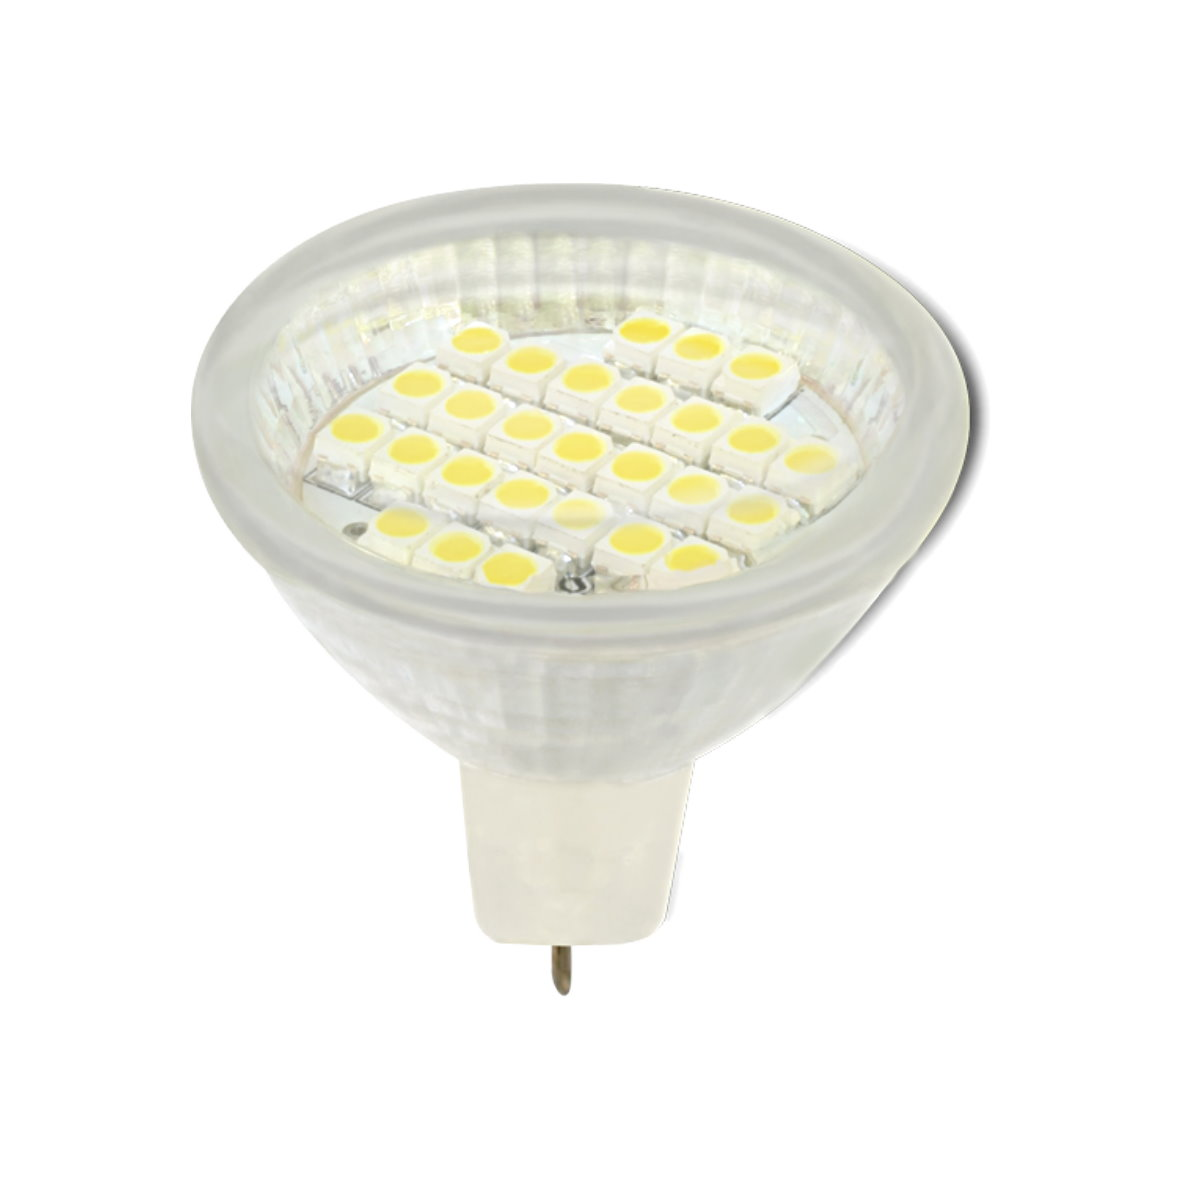 Led Birnen G4 G4 Led Ascher 5er Pack G4 Led Birnen 3w 20 X 2835 Smd